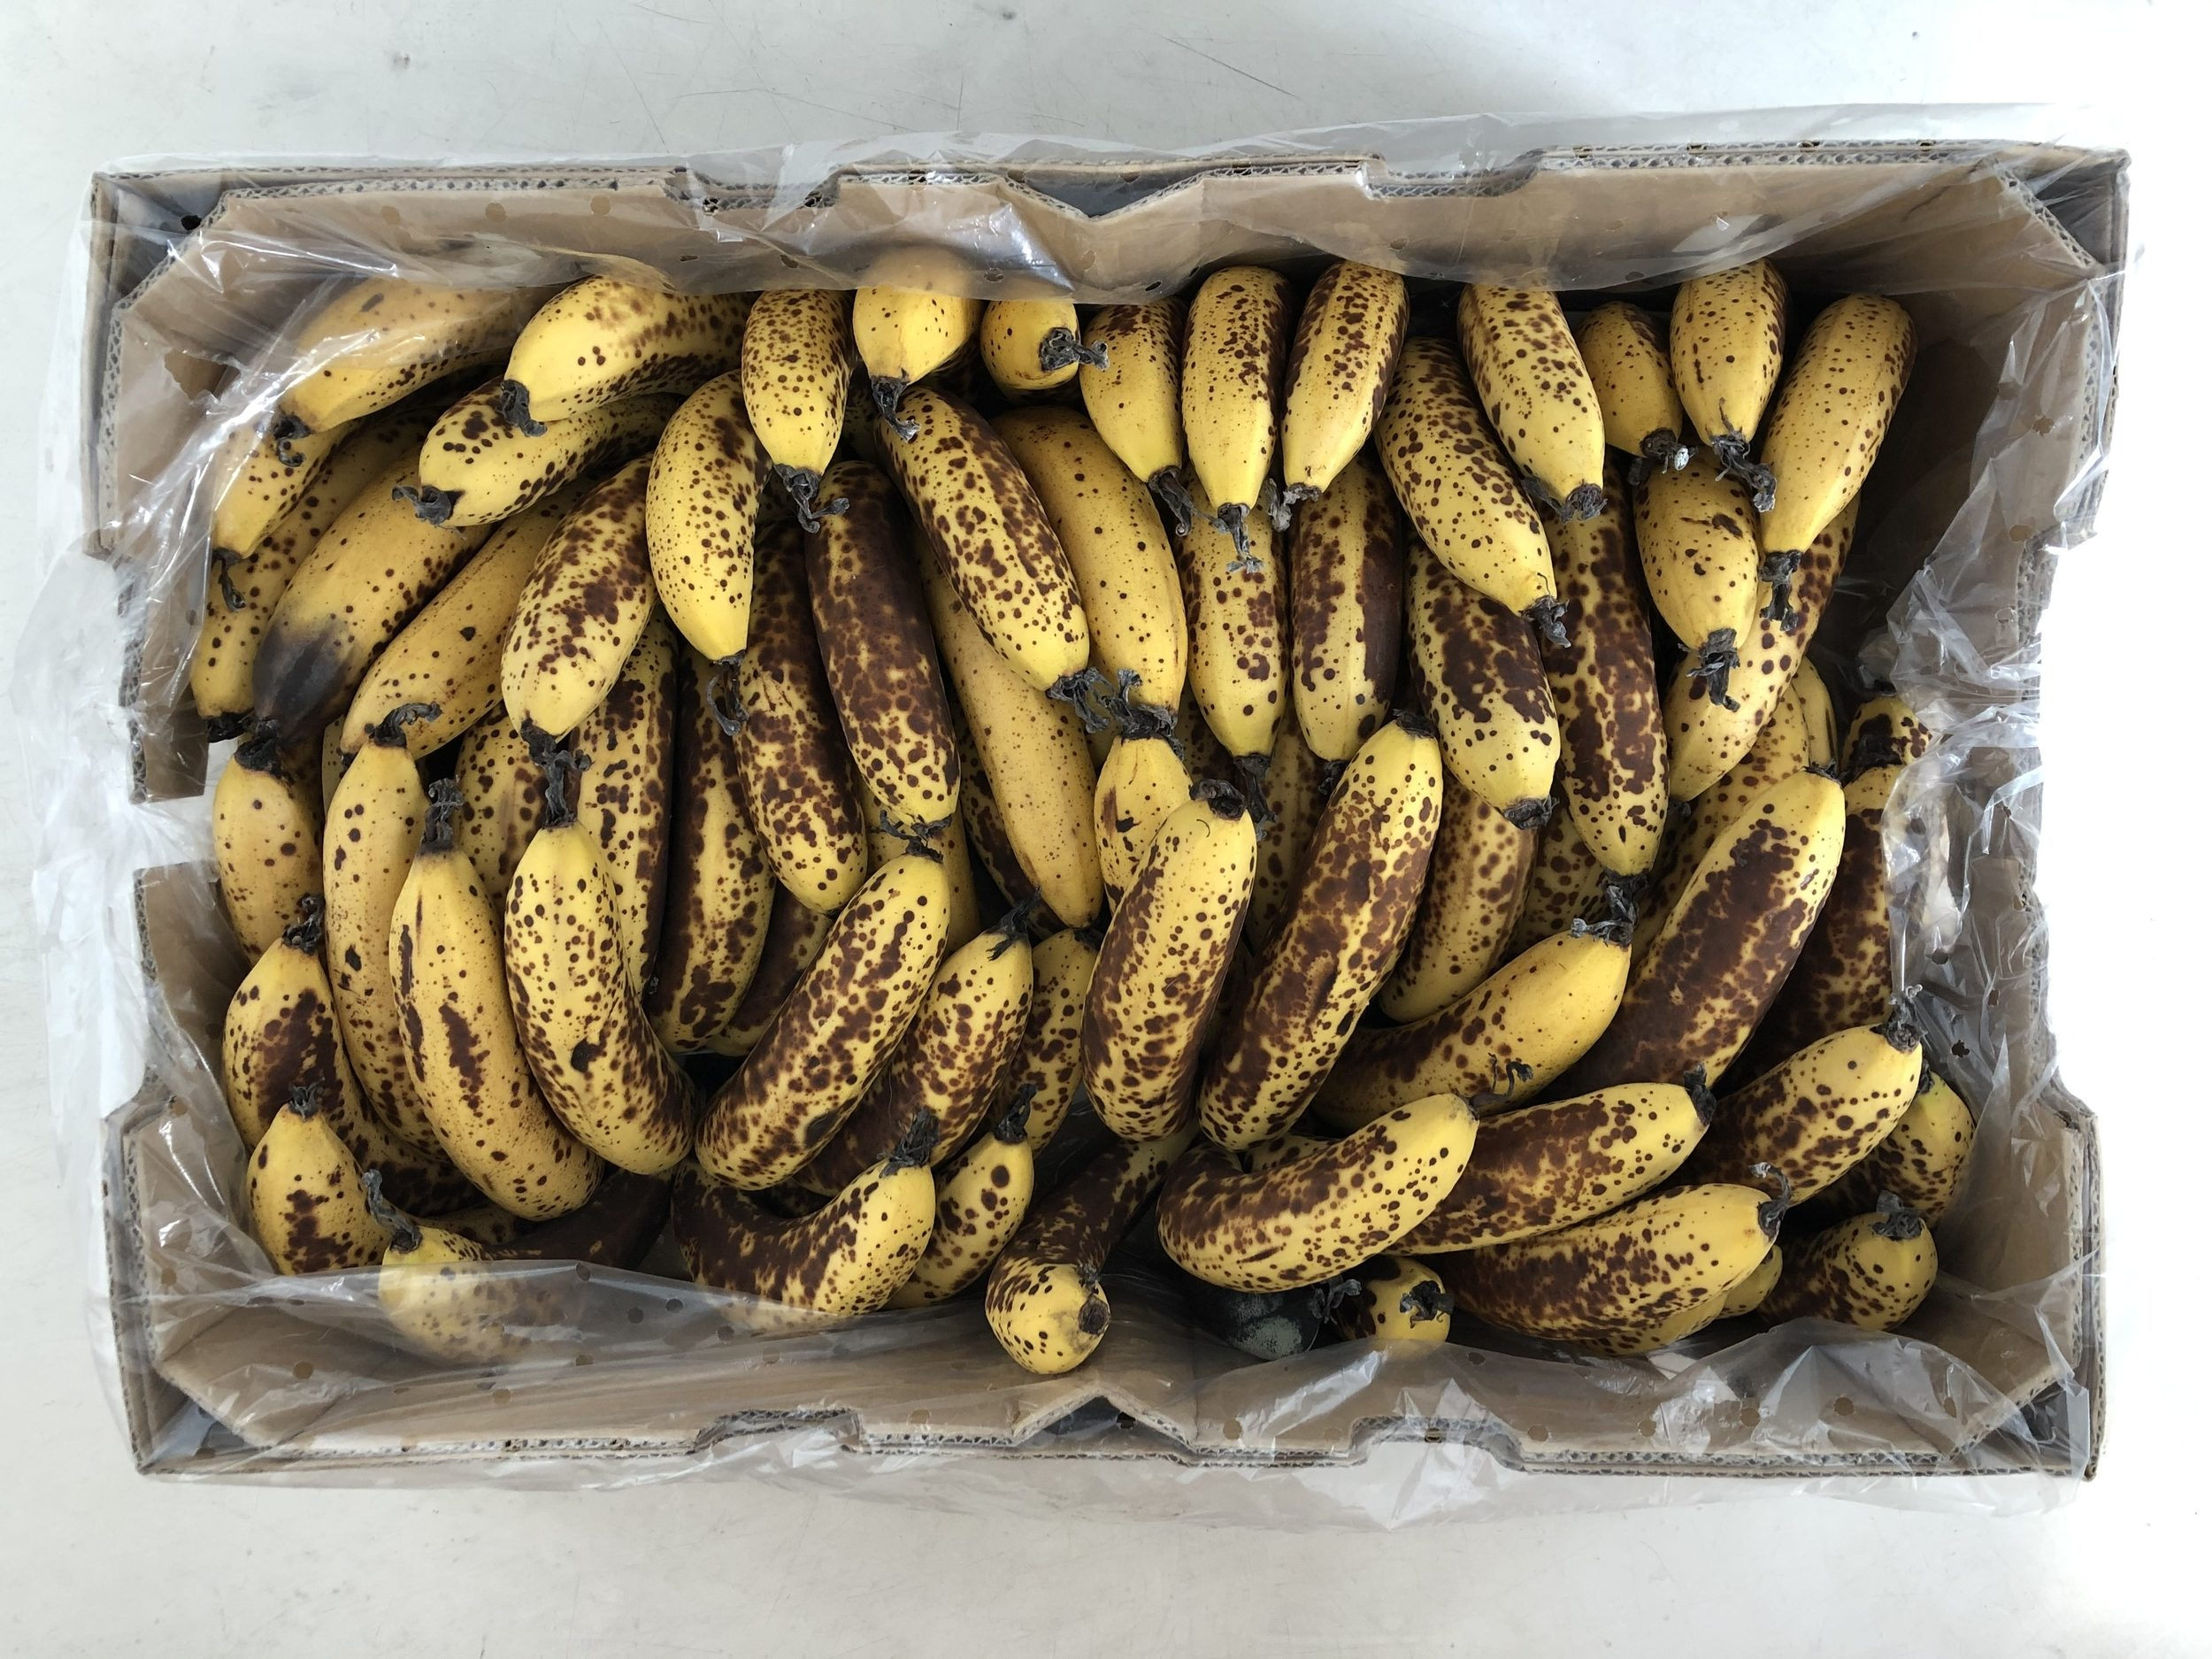 Box of bananas showing how ripe they need to be for dogs to eat them